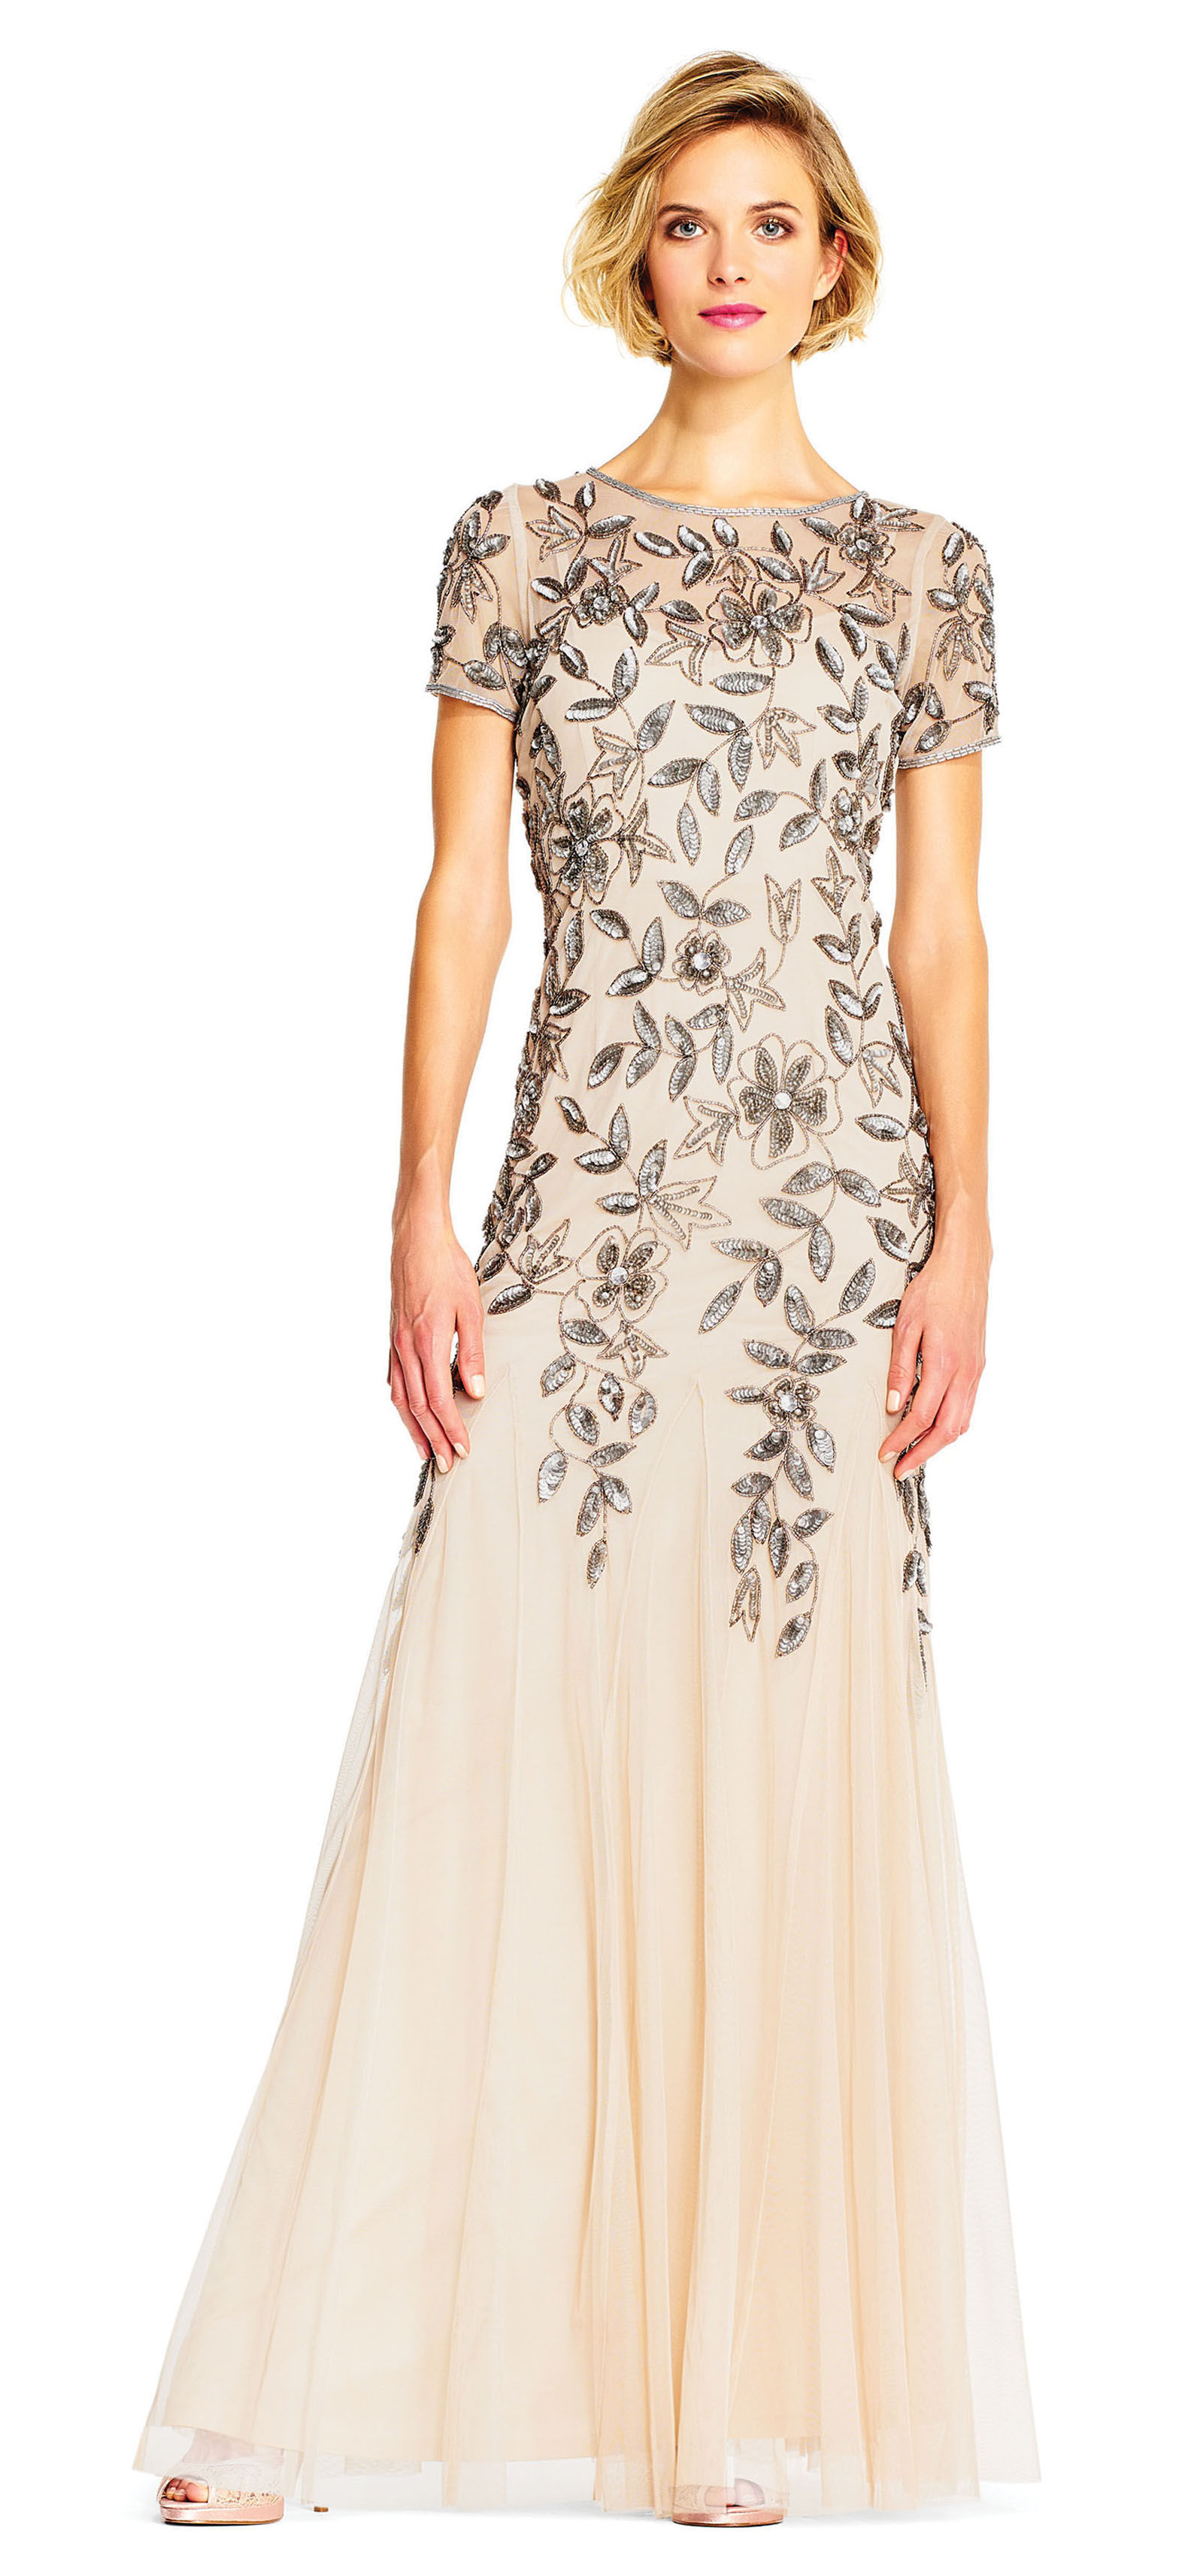 The perfect design and size for mother of the bride dresses